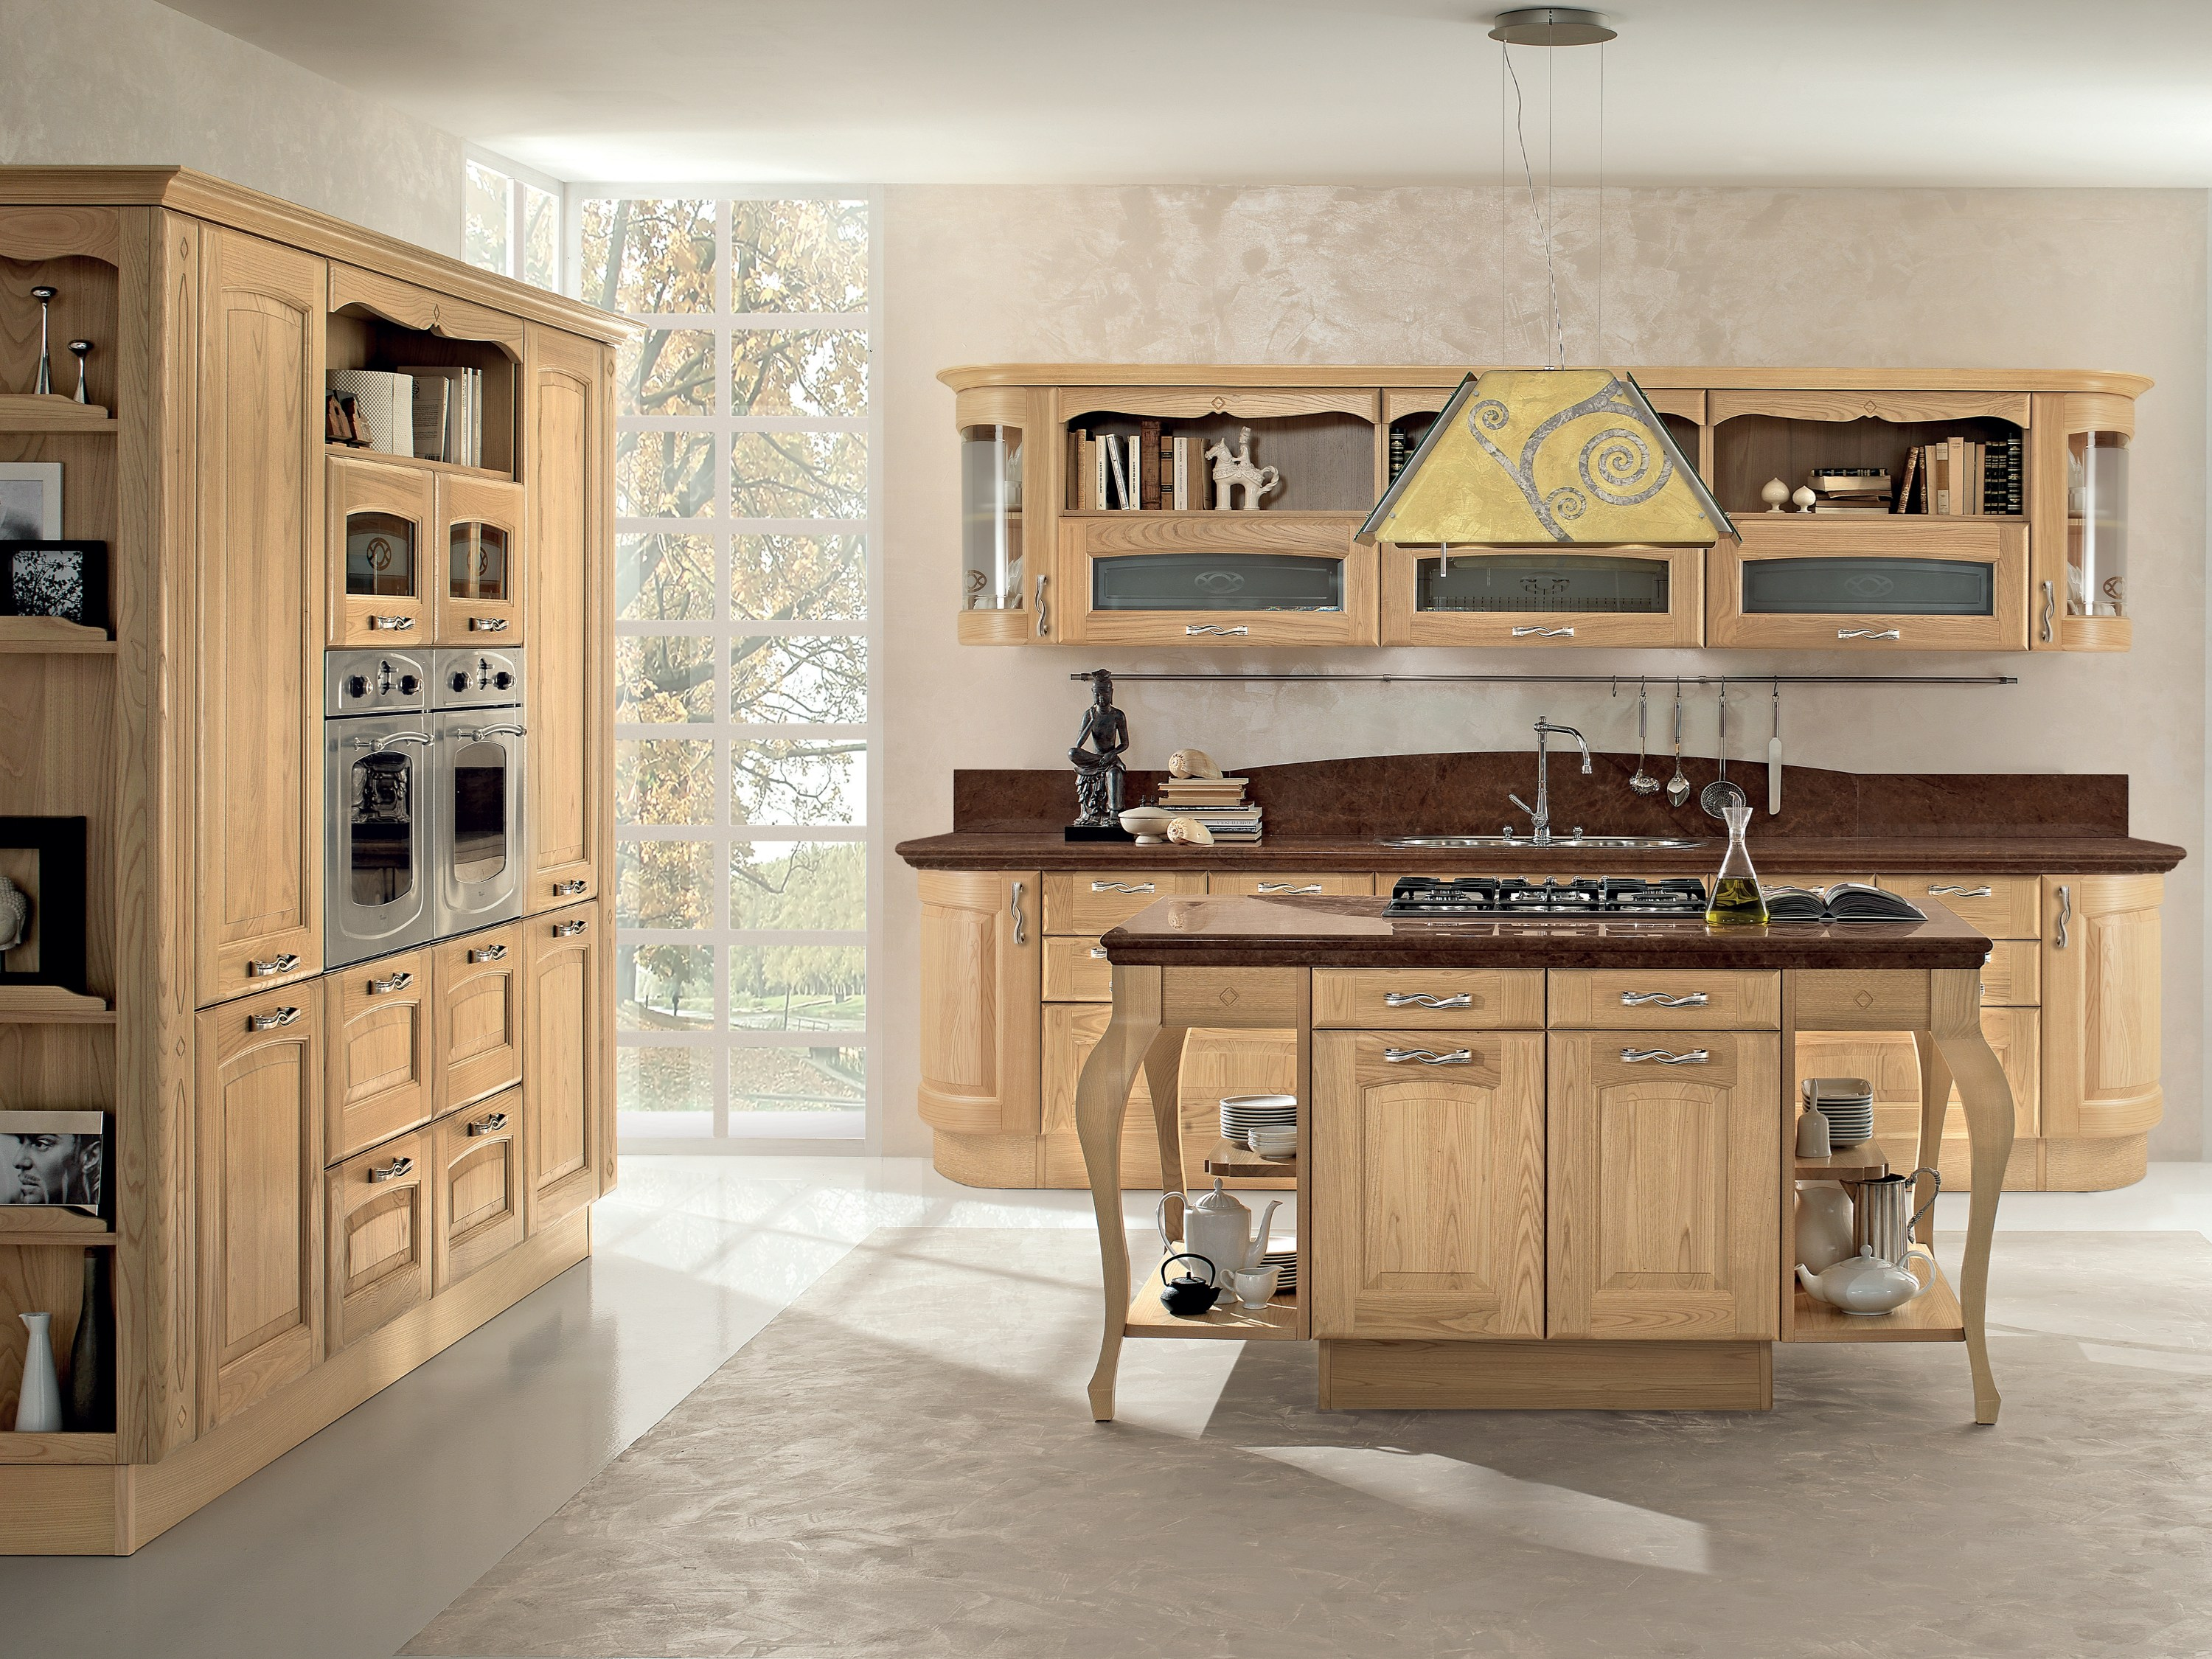 veronica wooden kitchen by cucine lube. Black Bedroom Furniture Sets. Home Design Ideas